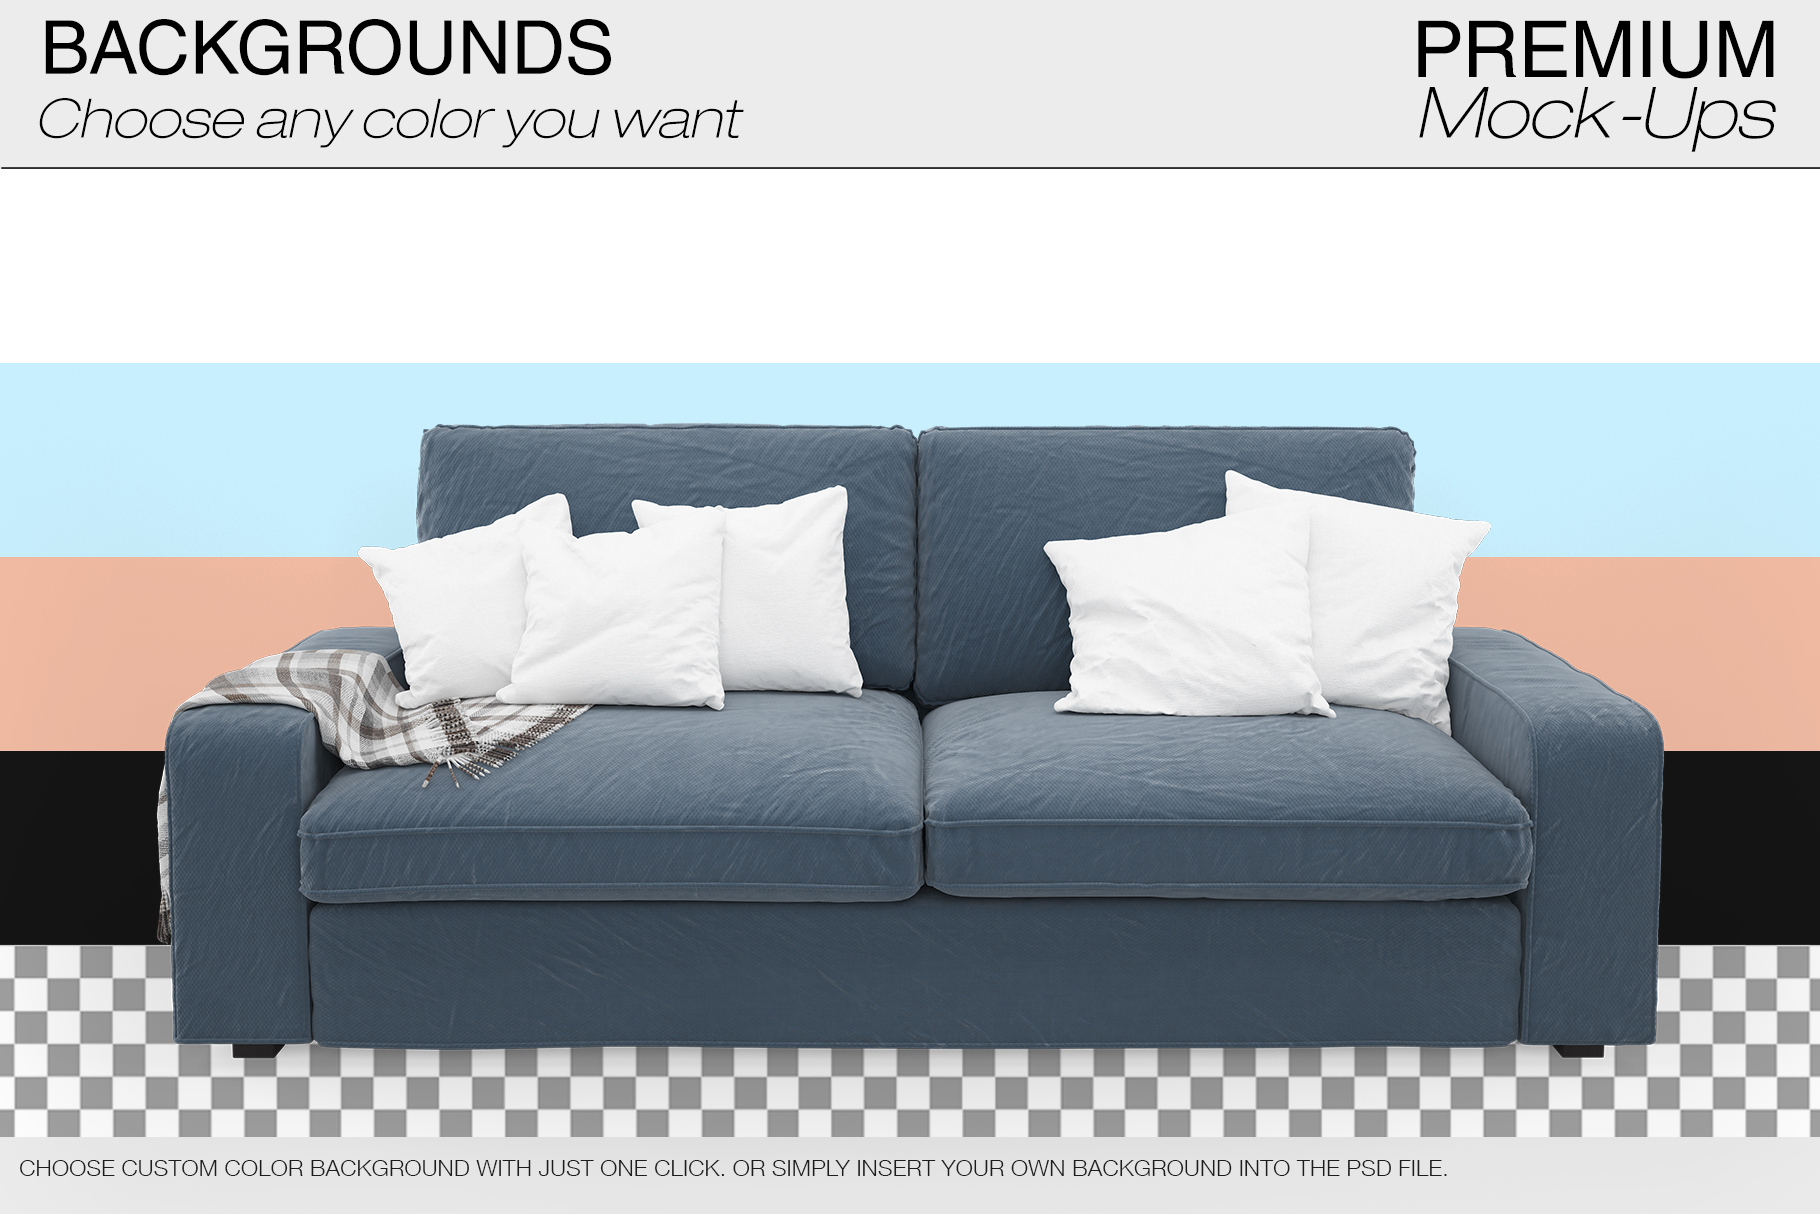 Pillow Mockups example image 2